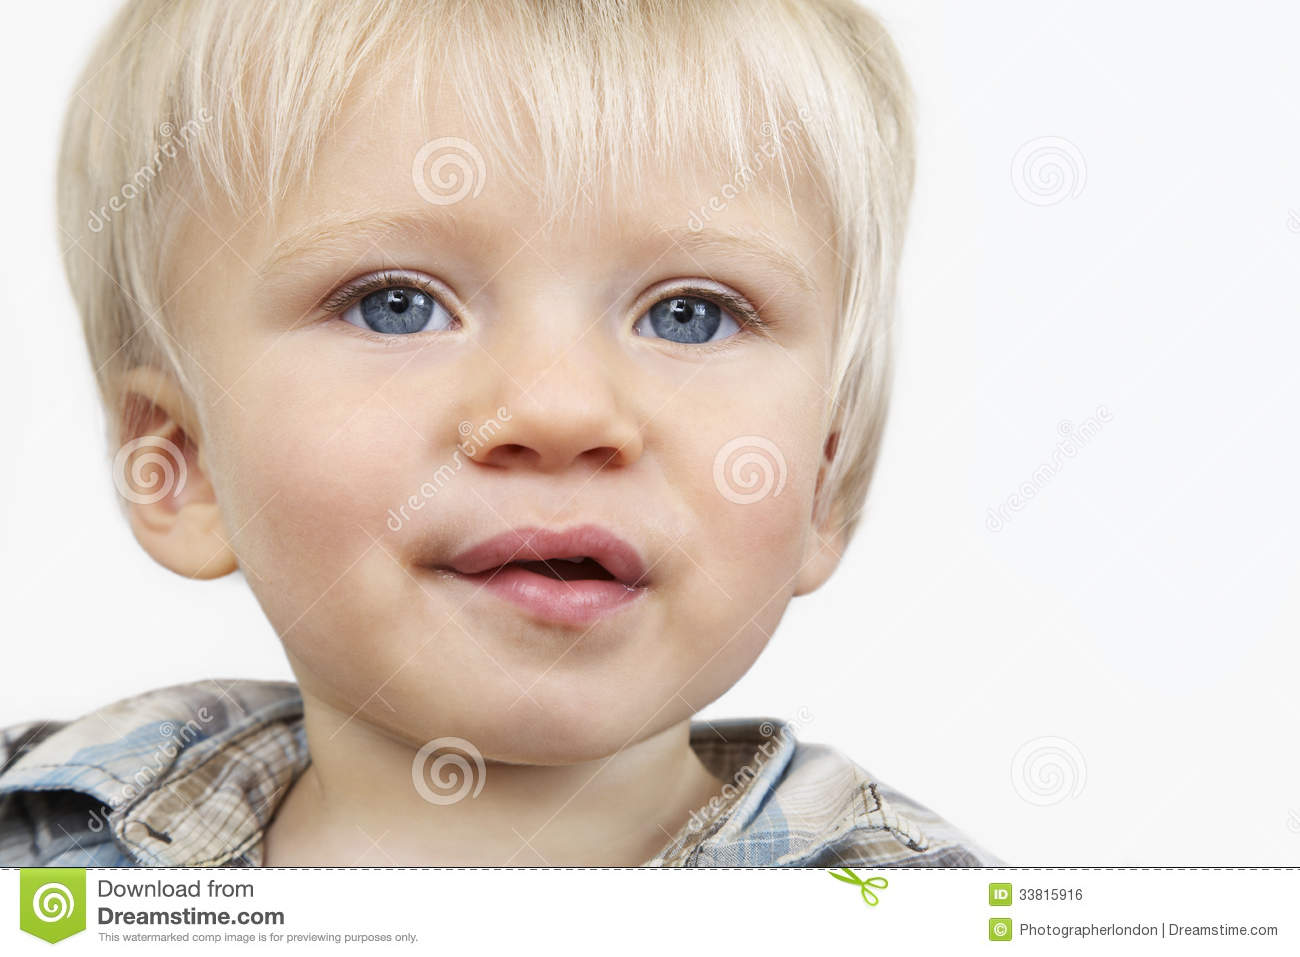 Cute Baby Boy With Blue Eyes Royalty Free Stock Image ... Cute Baby Boy Blue Eyes With Swag